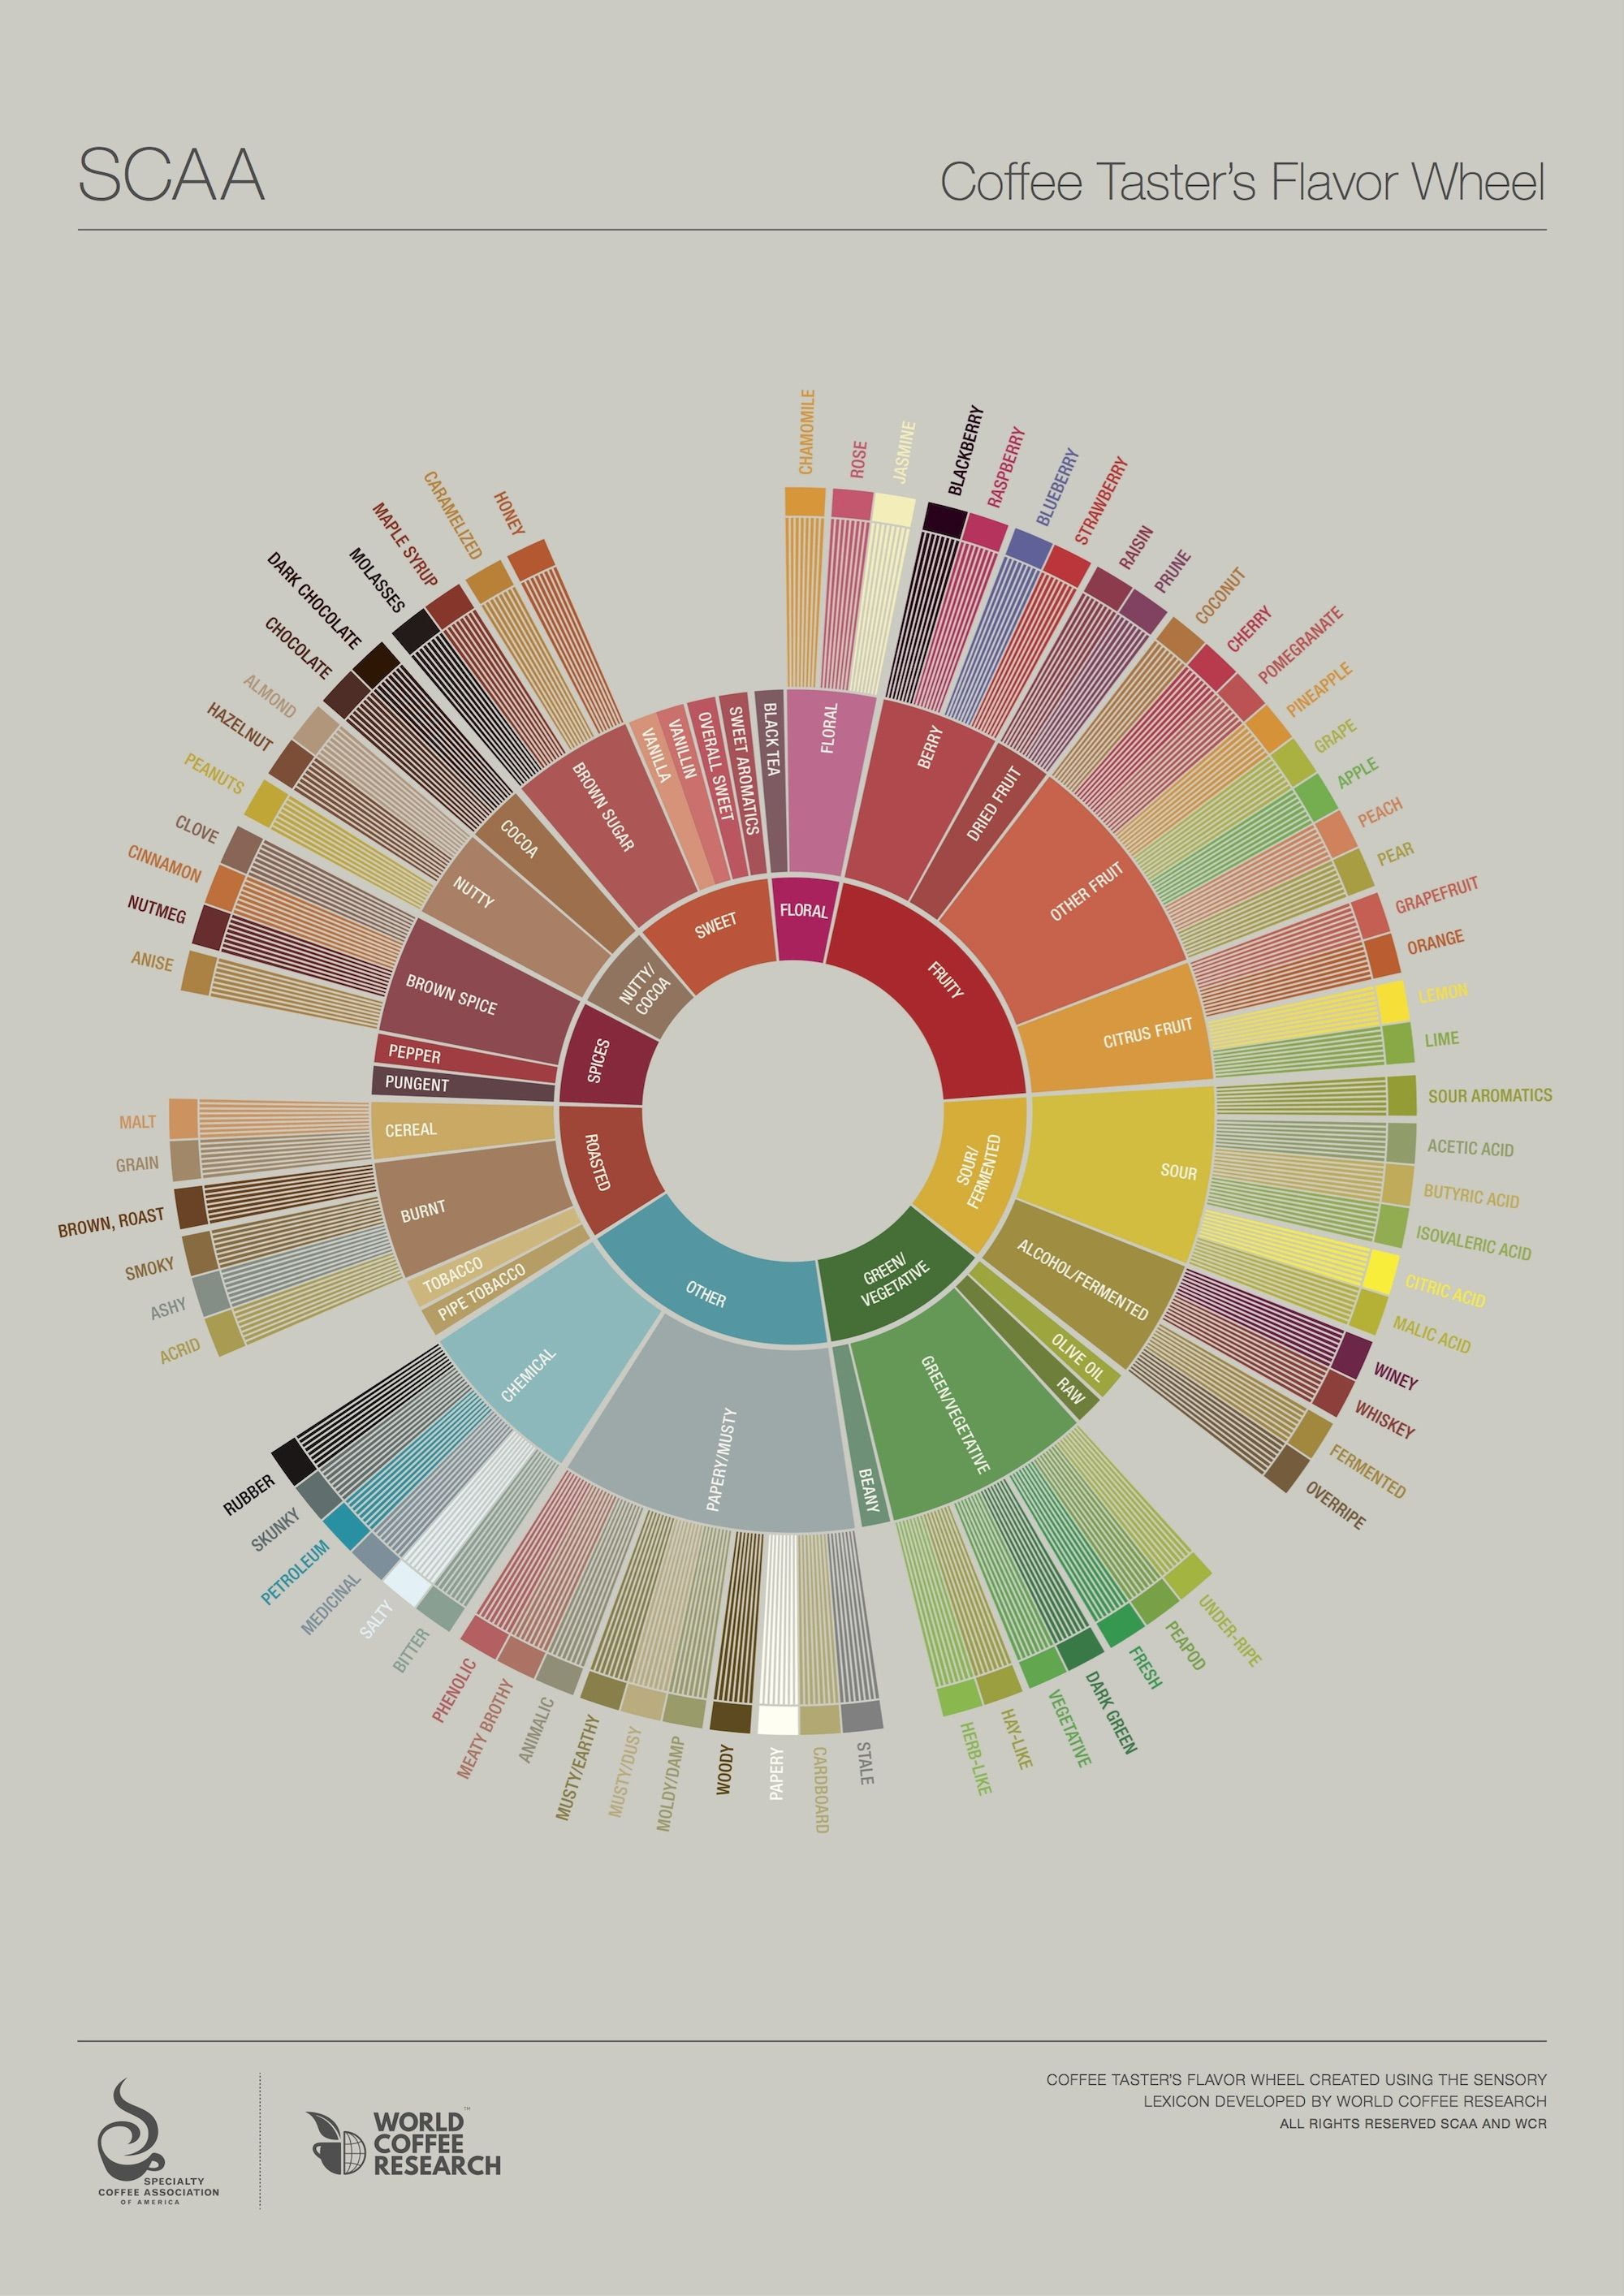 Reinventing The Flavor Wheel Industry Collaborates To Identify Coffee Flavor Attributes Specialty Coffee Association News Coffee Roasting Coffee Tasting Coffee Flavor